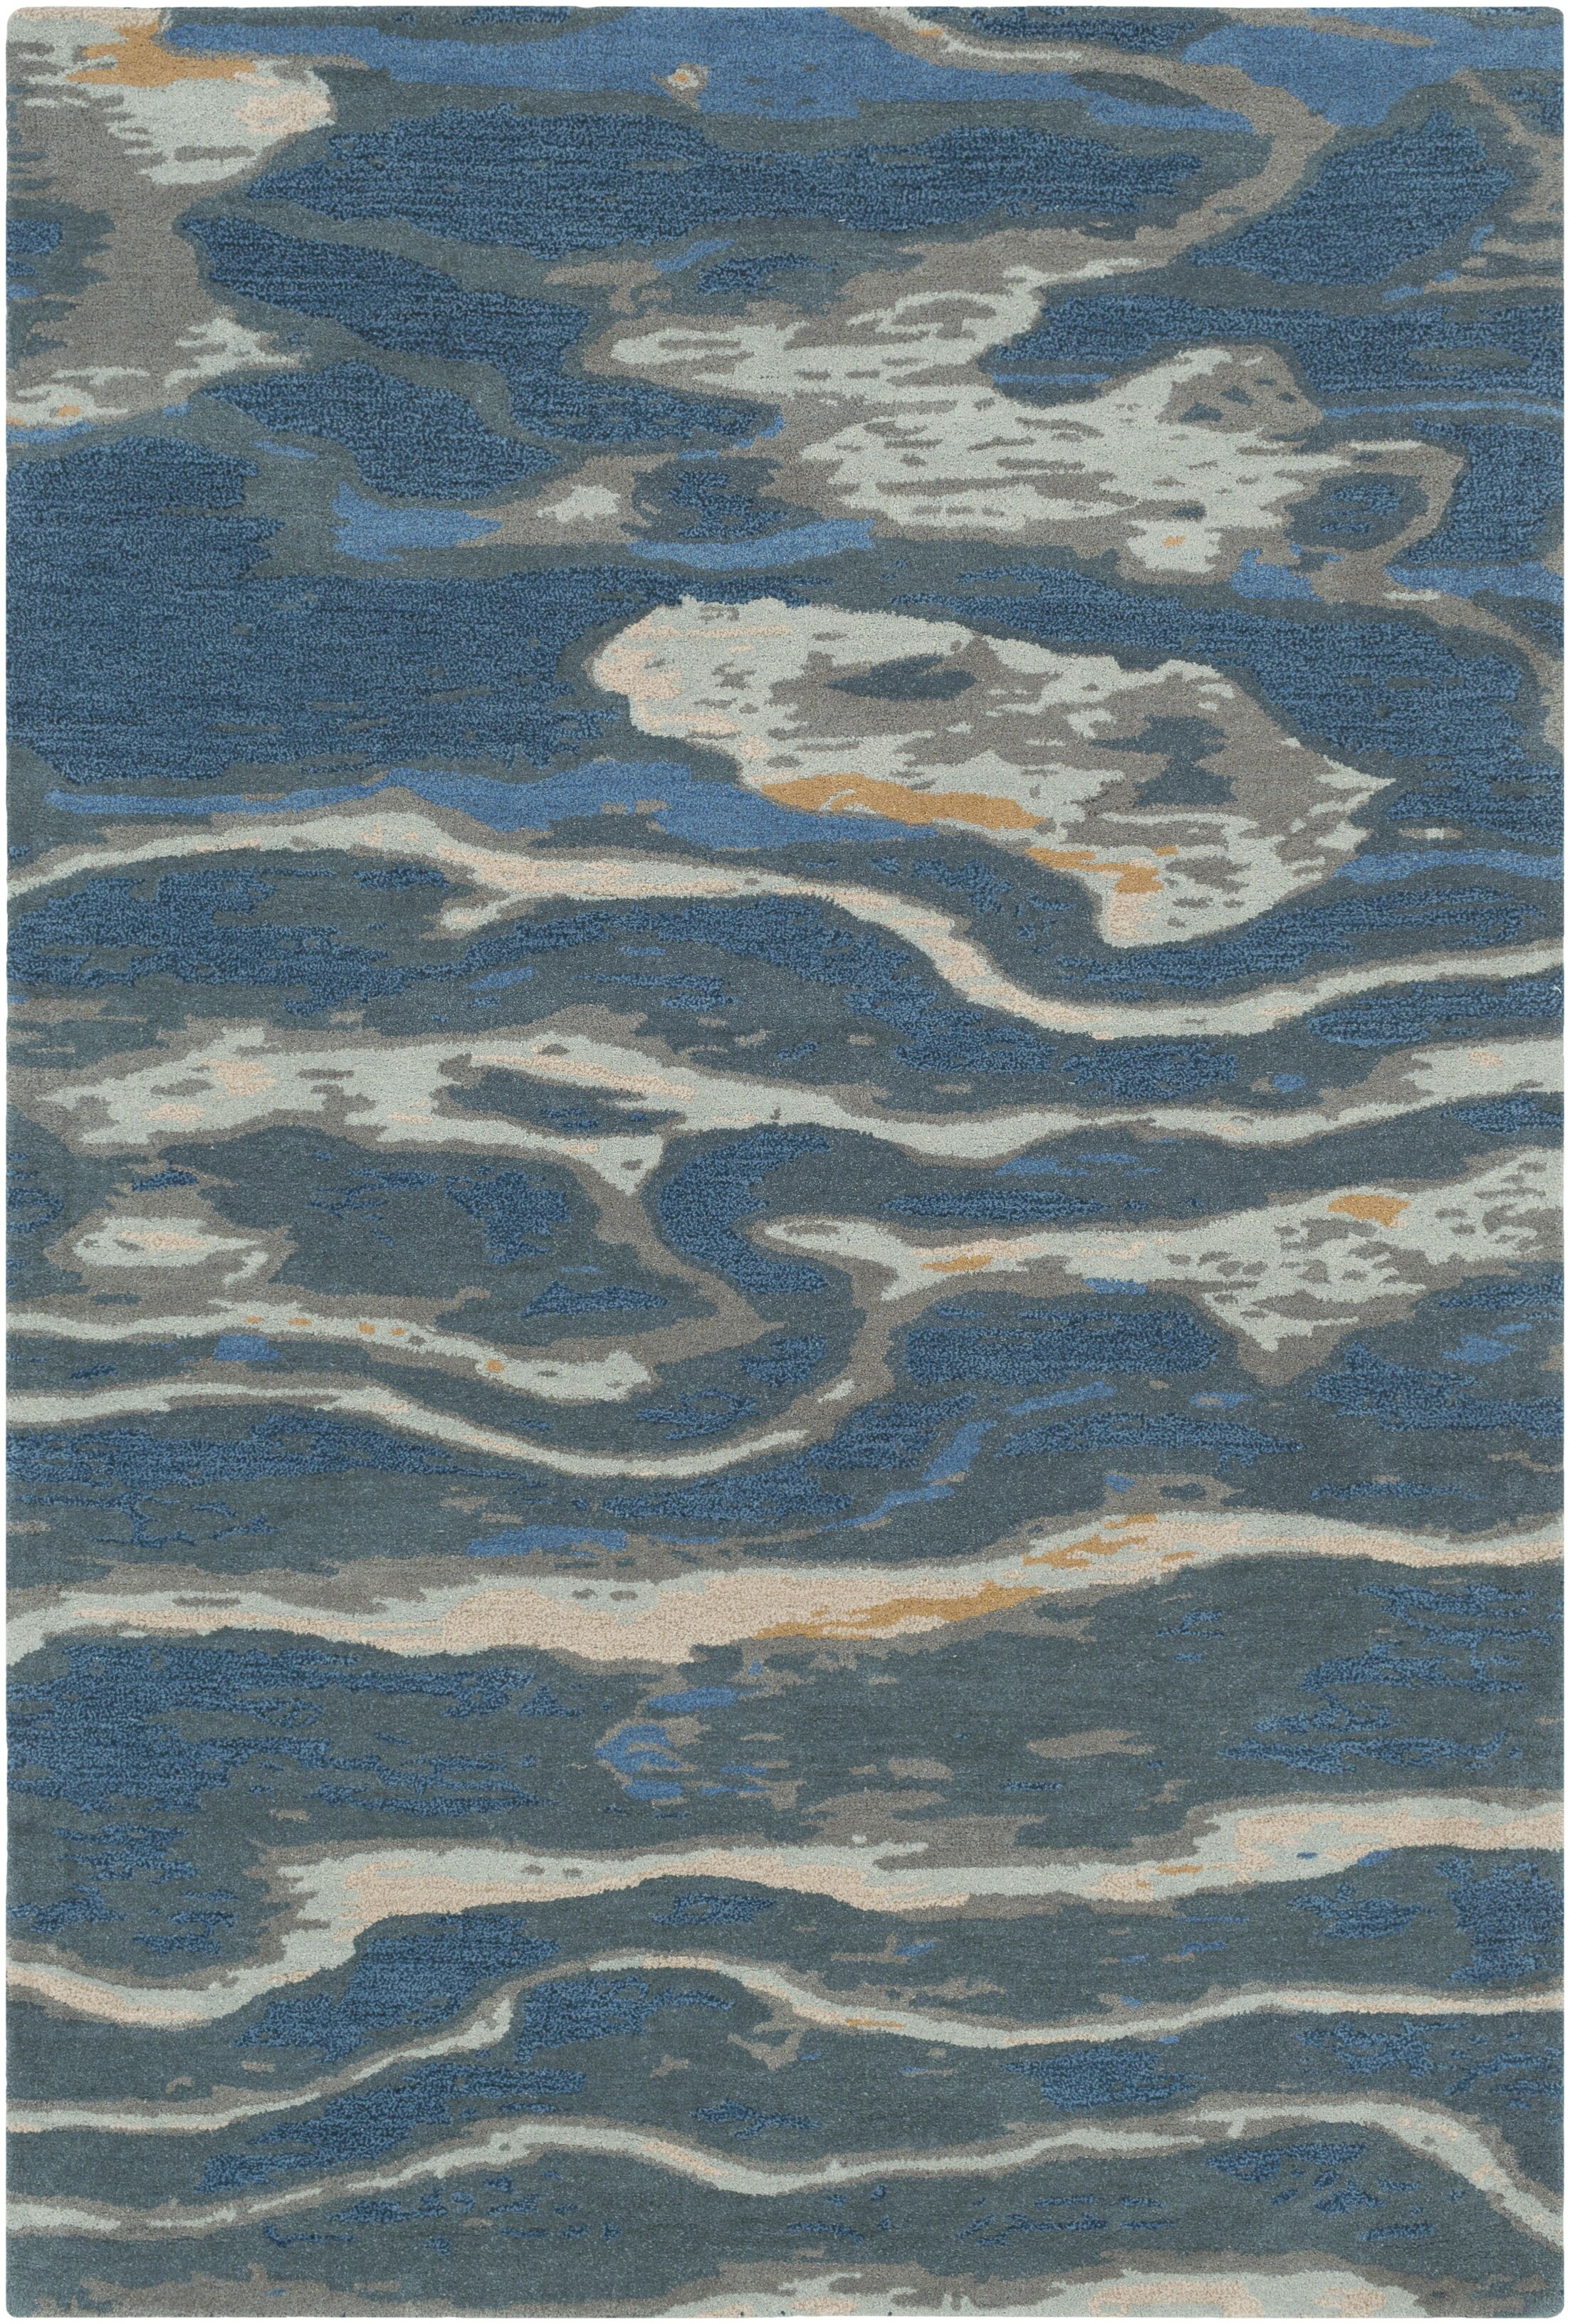 Borges Hand-Tufted Navy/Sea Foam Area Rug Rug Size: Runner 2'6